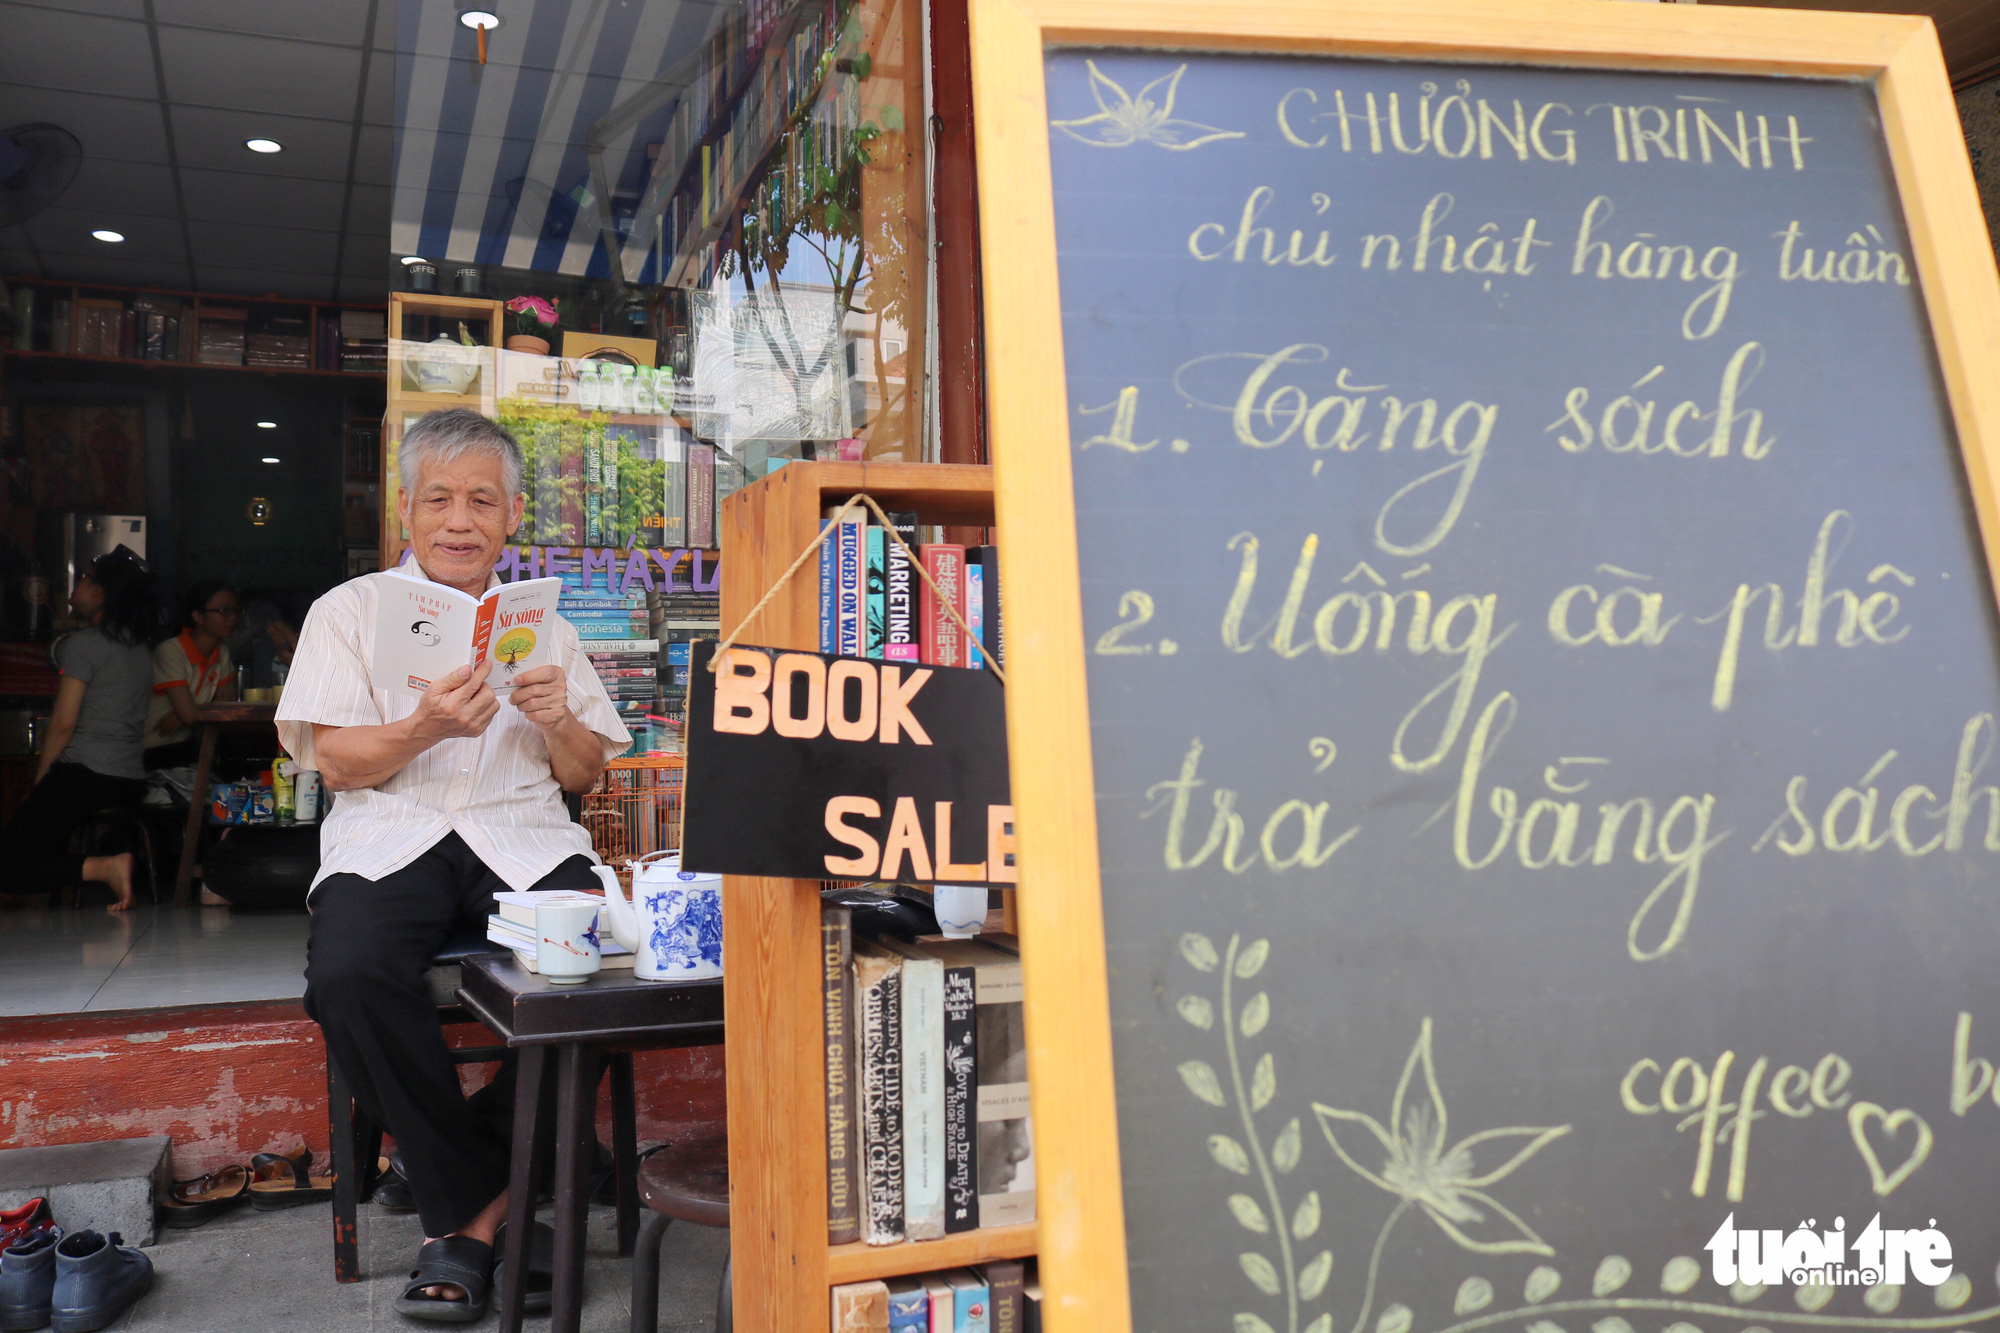 Tran Van Luyen, 78, indulges in a selection of books at the bookstore-café on Nguyen Khac Nhu Street in Ho Chi Minh City, Vietnam. Photo: Ngoc Phuong / Tuoi Tre